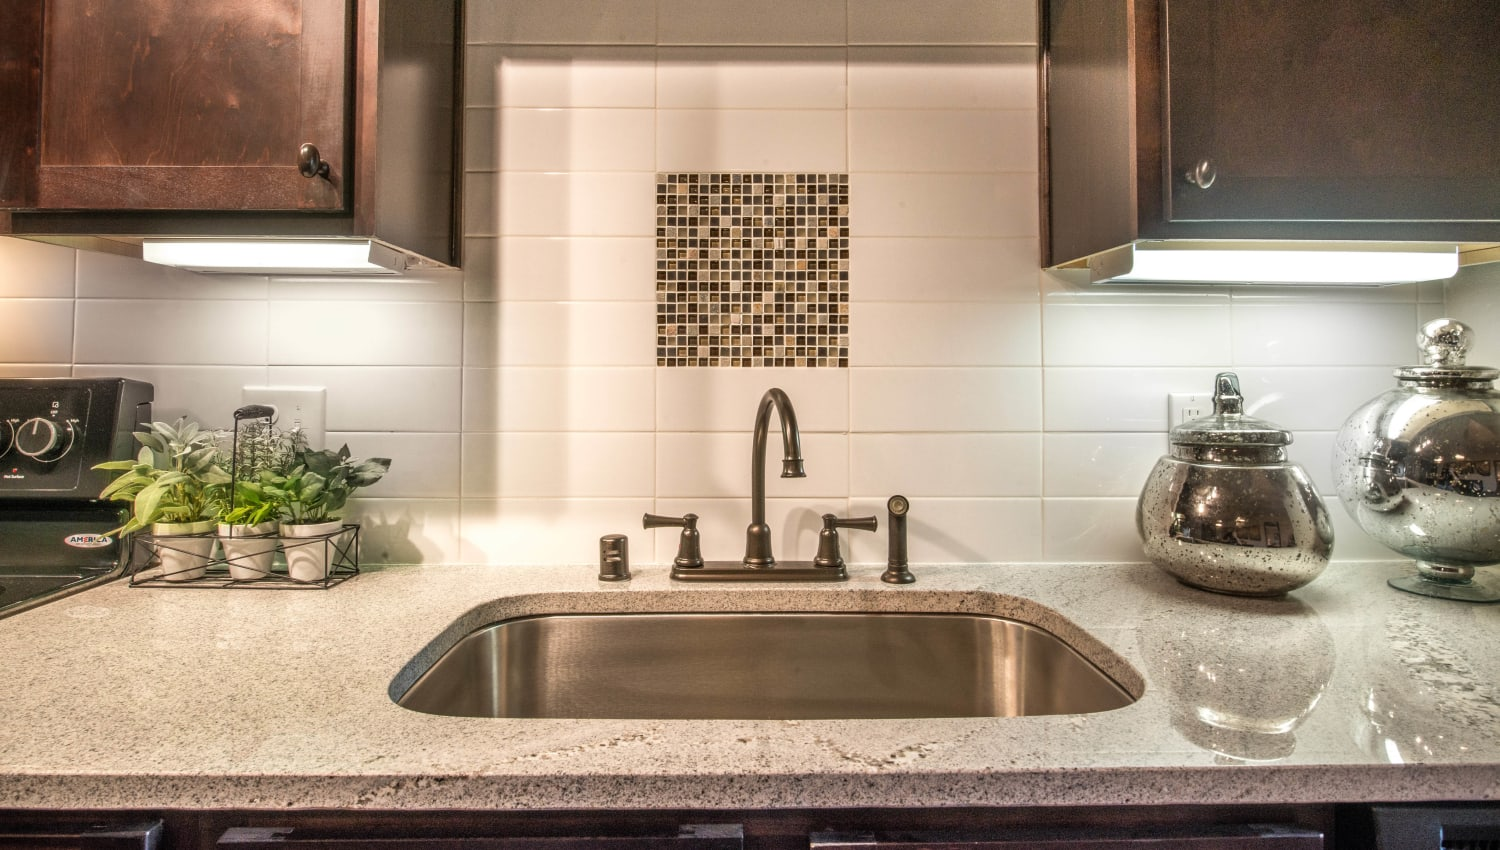 Custom tile backsplash in a model home's kitchen at Union At Carrollton Square in Carrollton, Texas